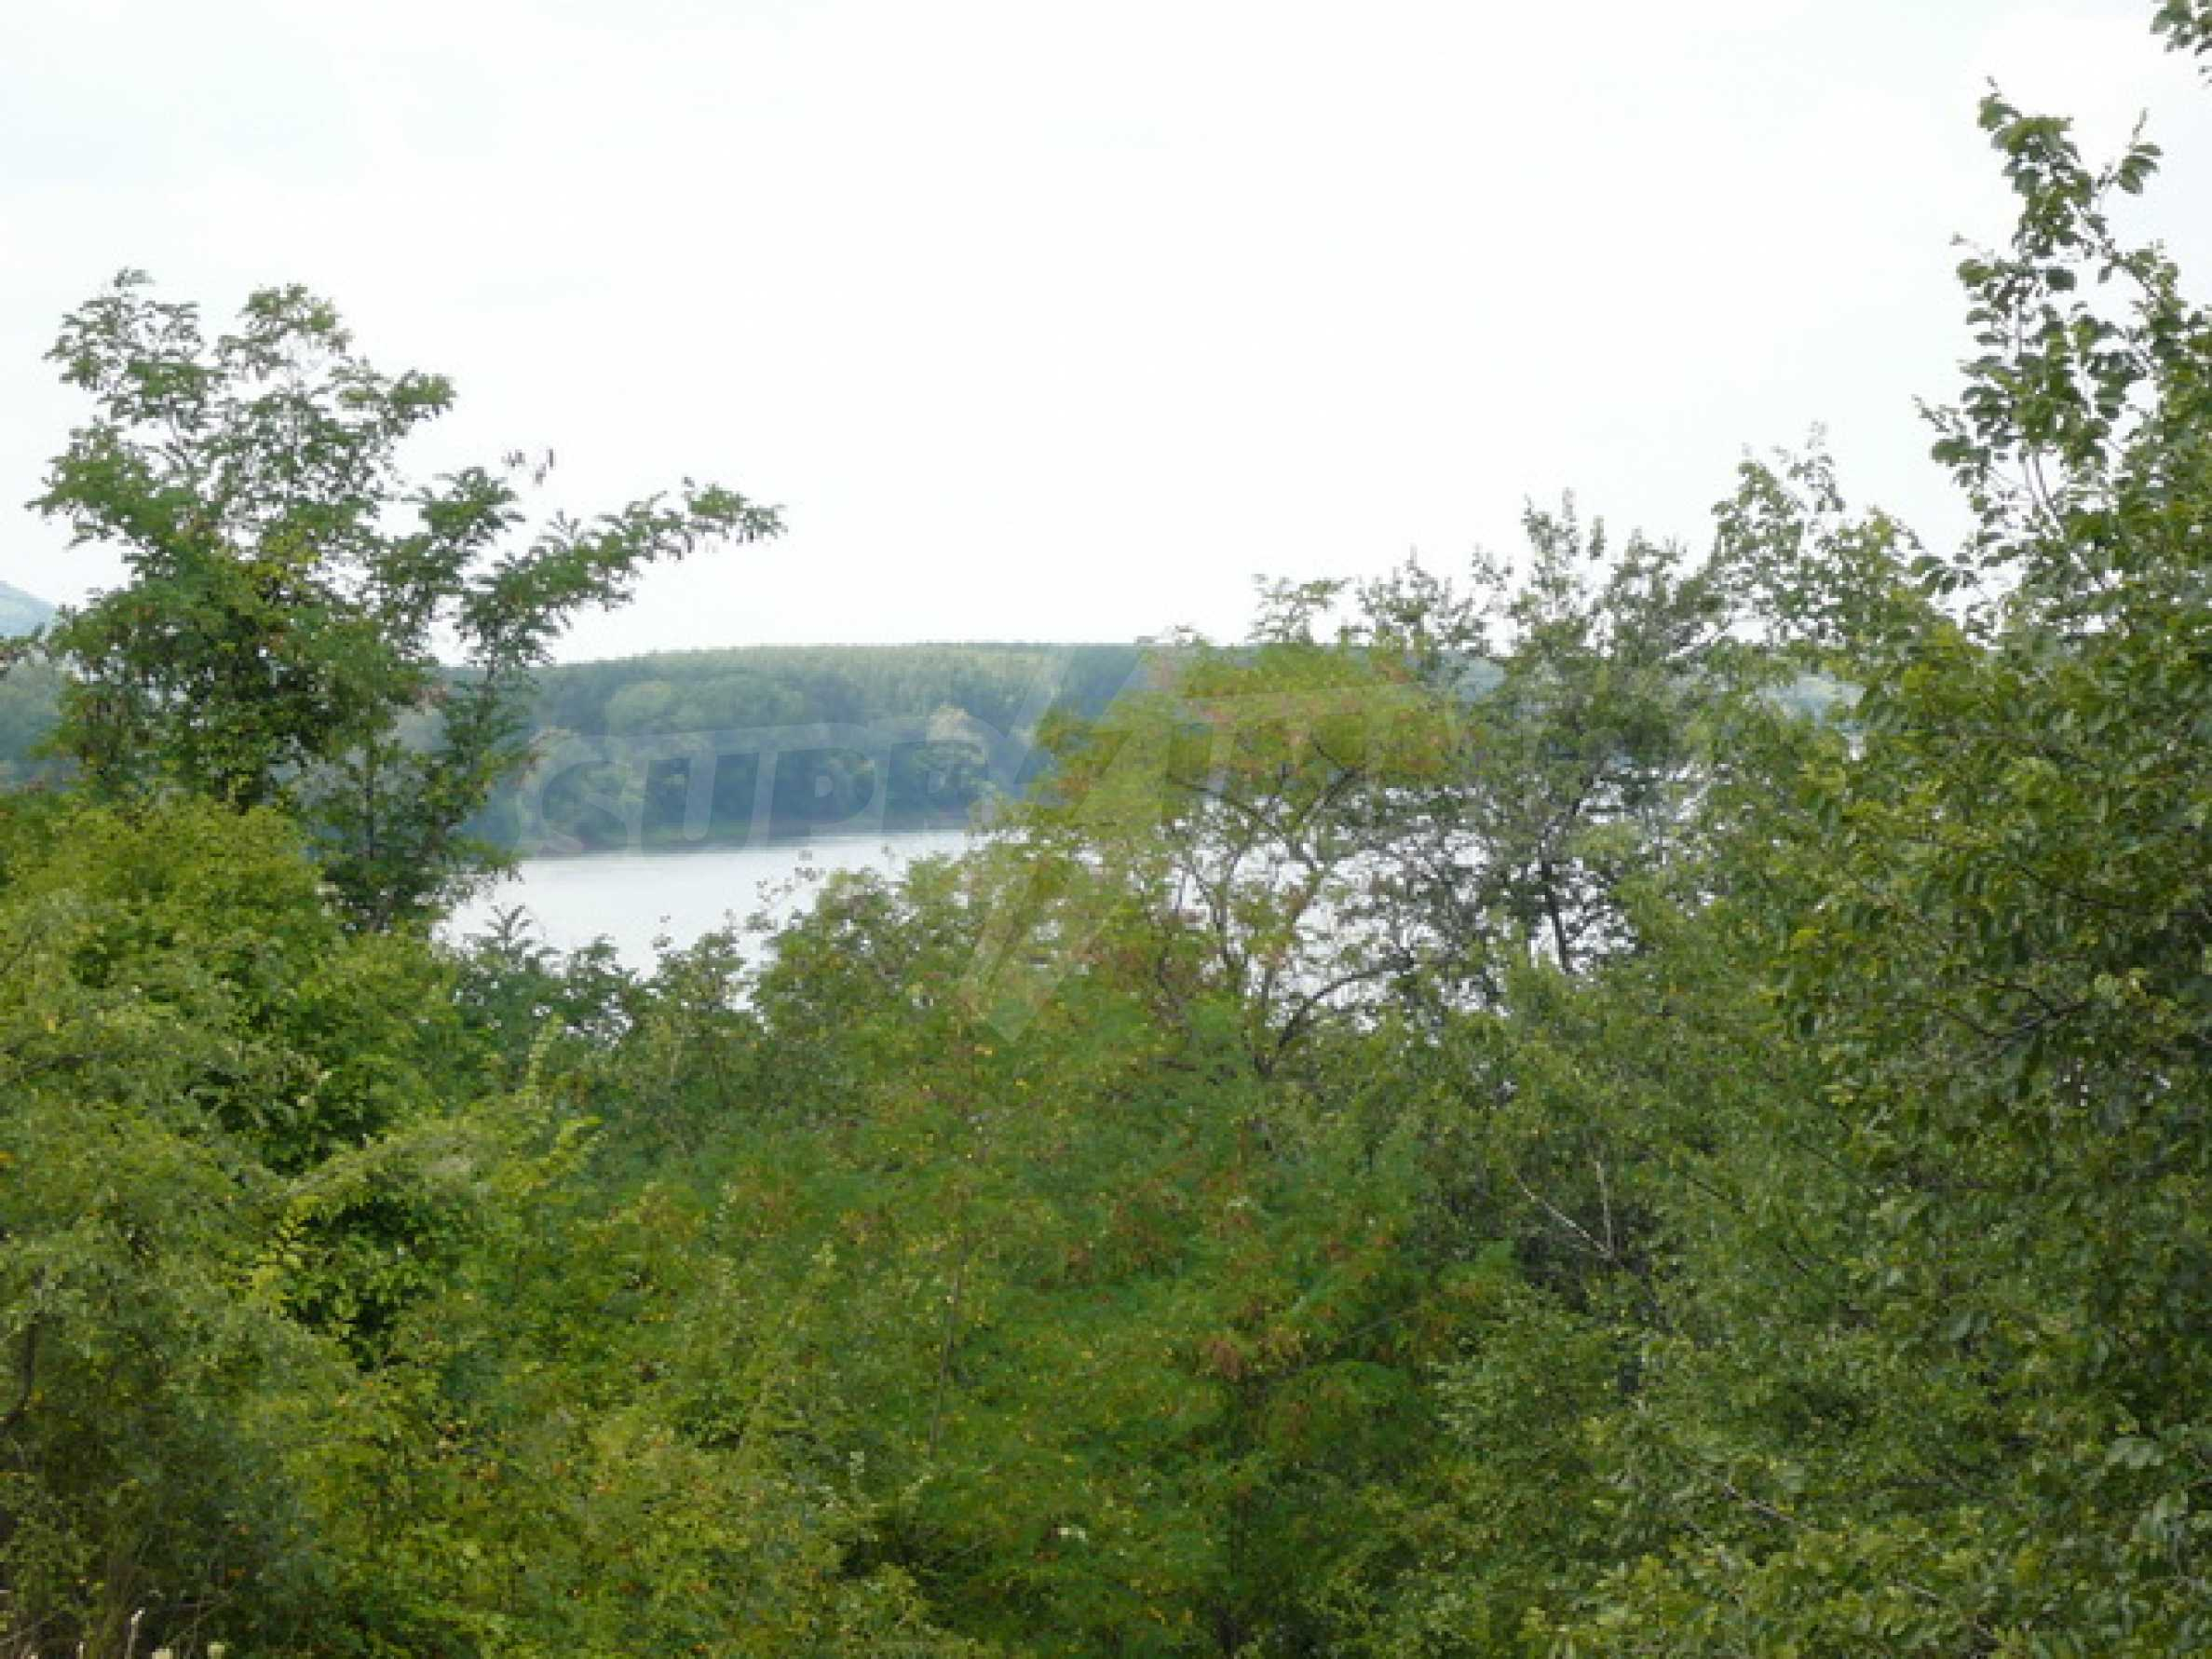 Property on the bank of the River Danube 13